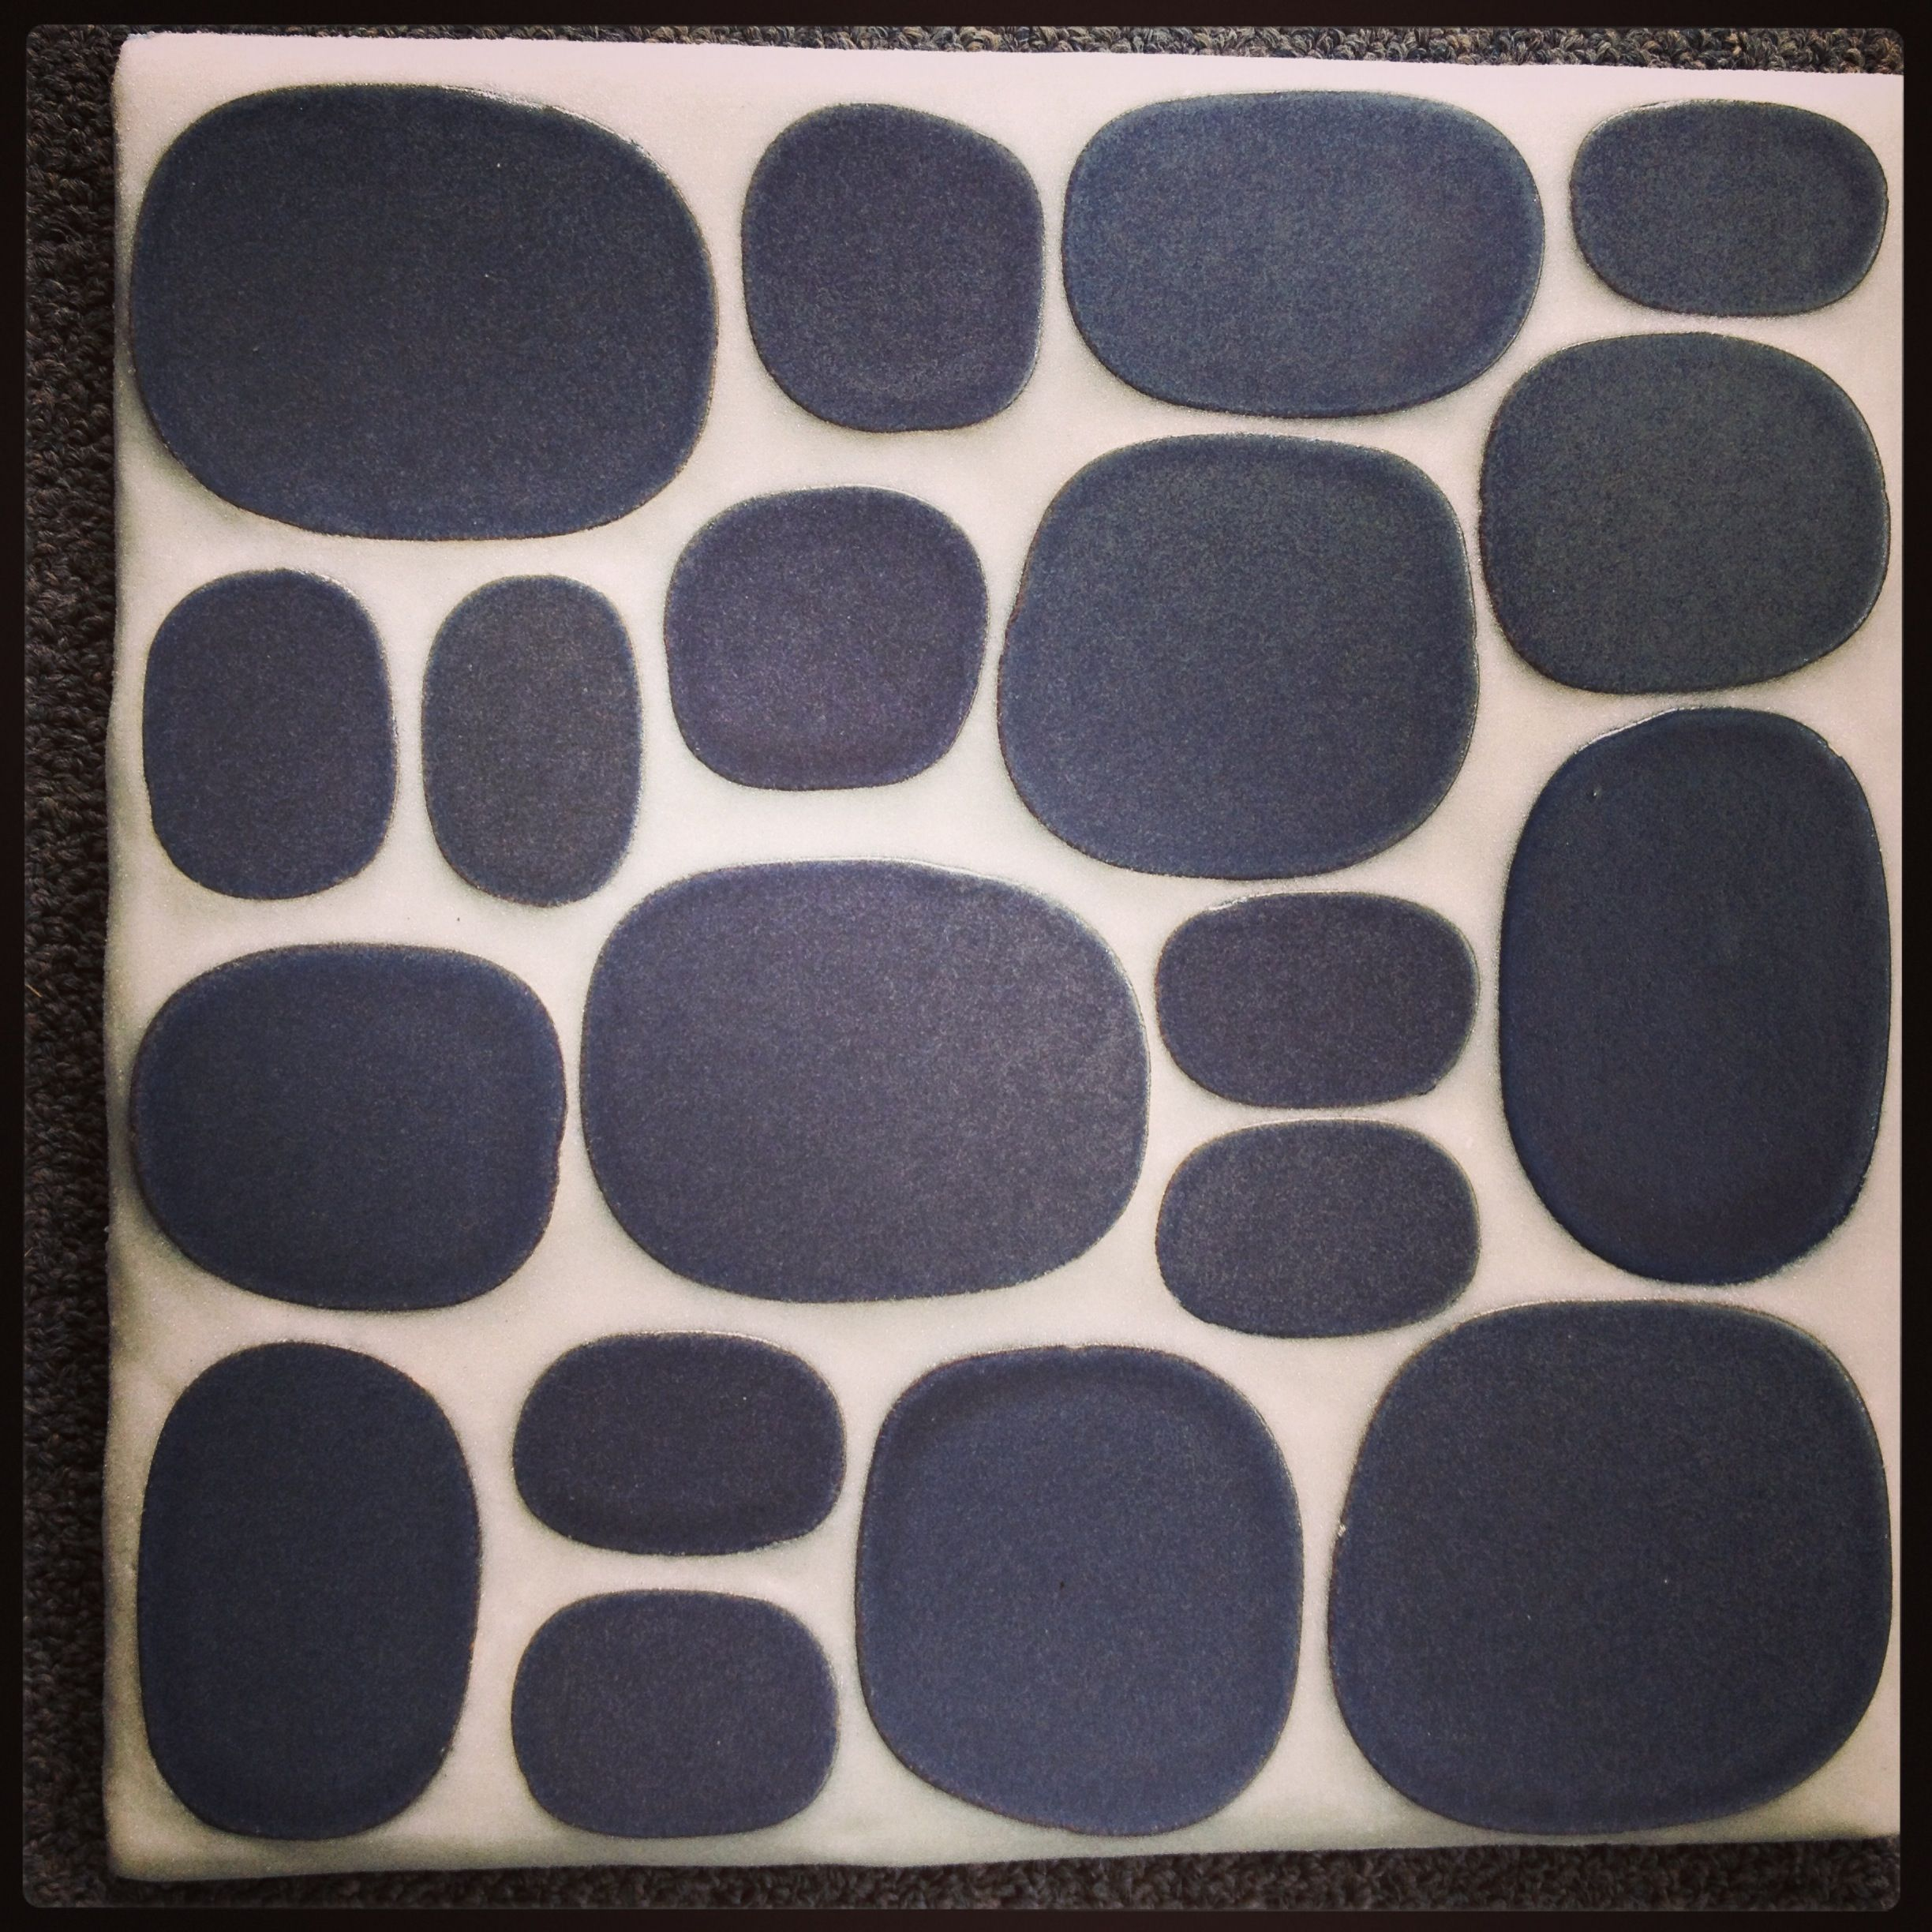 Rexray studio for modwalls new american made ceramic tile rox in rexray studio for modwalls new american made ceramic tile rox in eclipse black grouted with dailygadgetfo Choice Image